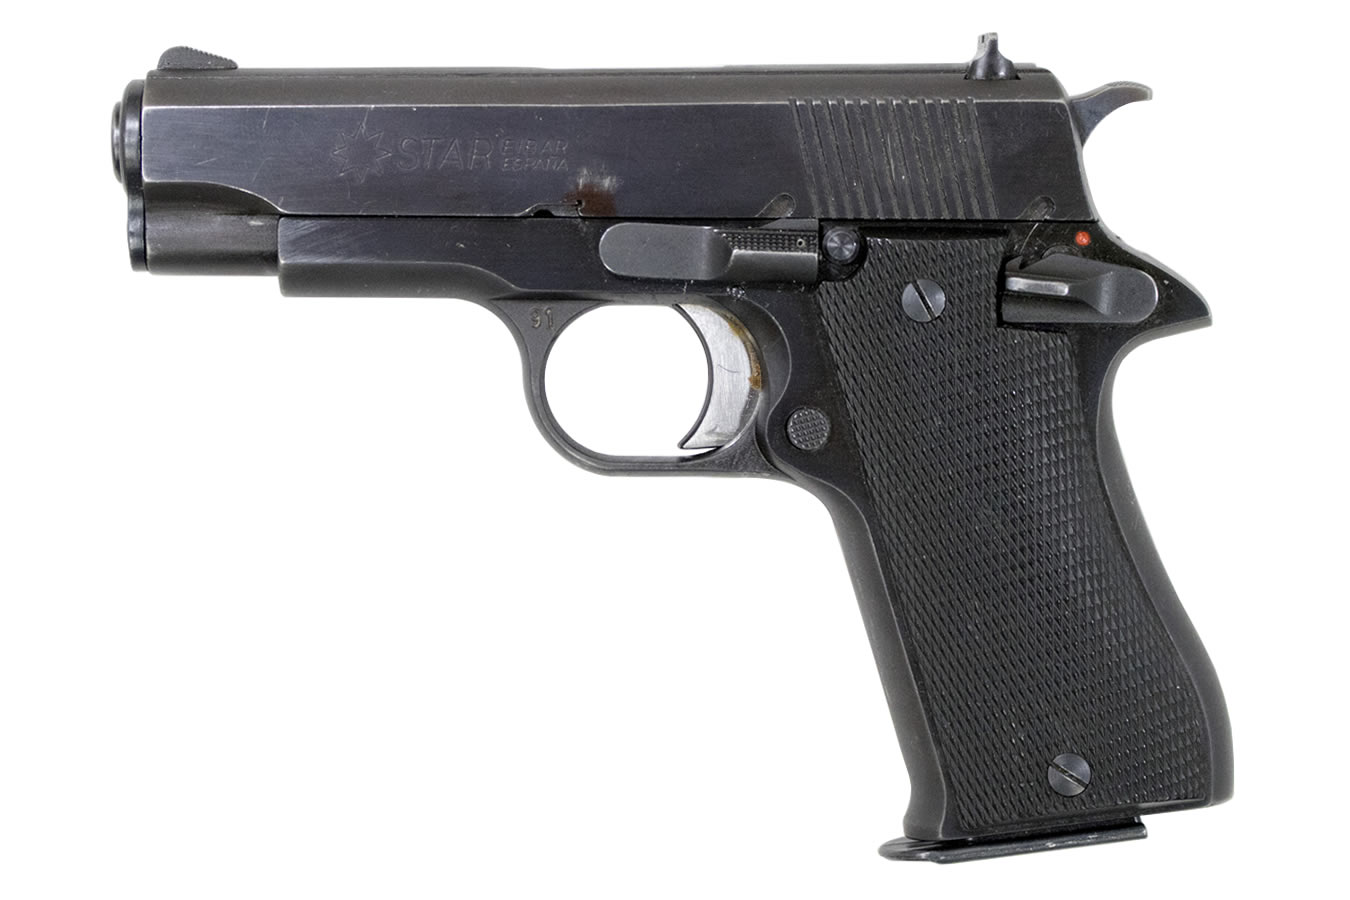 STAR MODEL BM 9MM SEMI-AUTOMATIC PISTOL